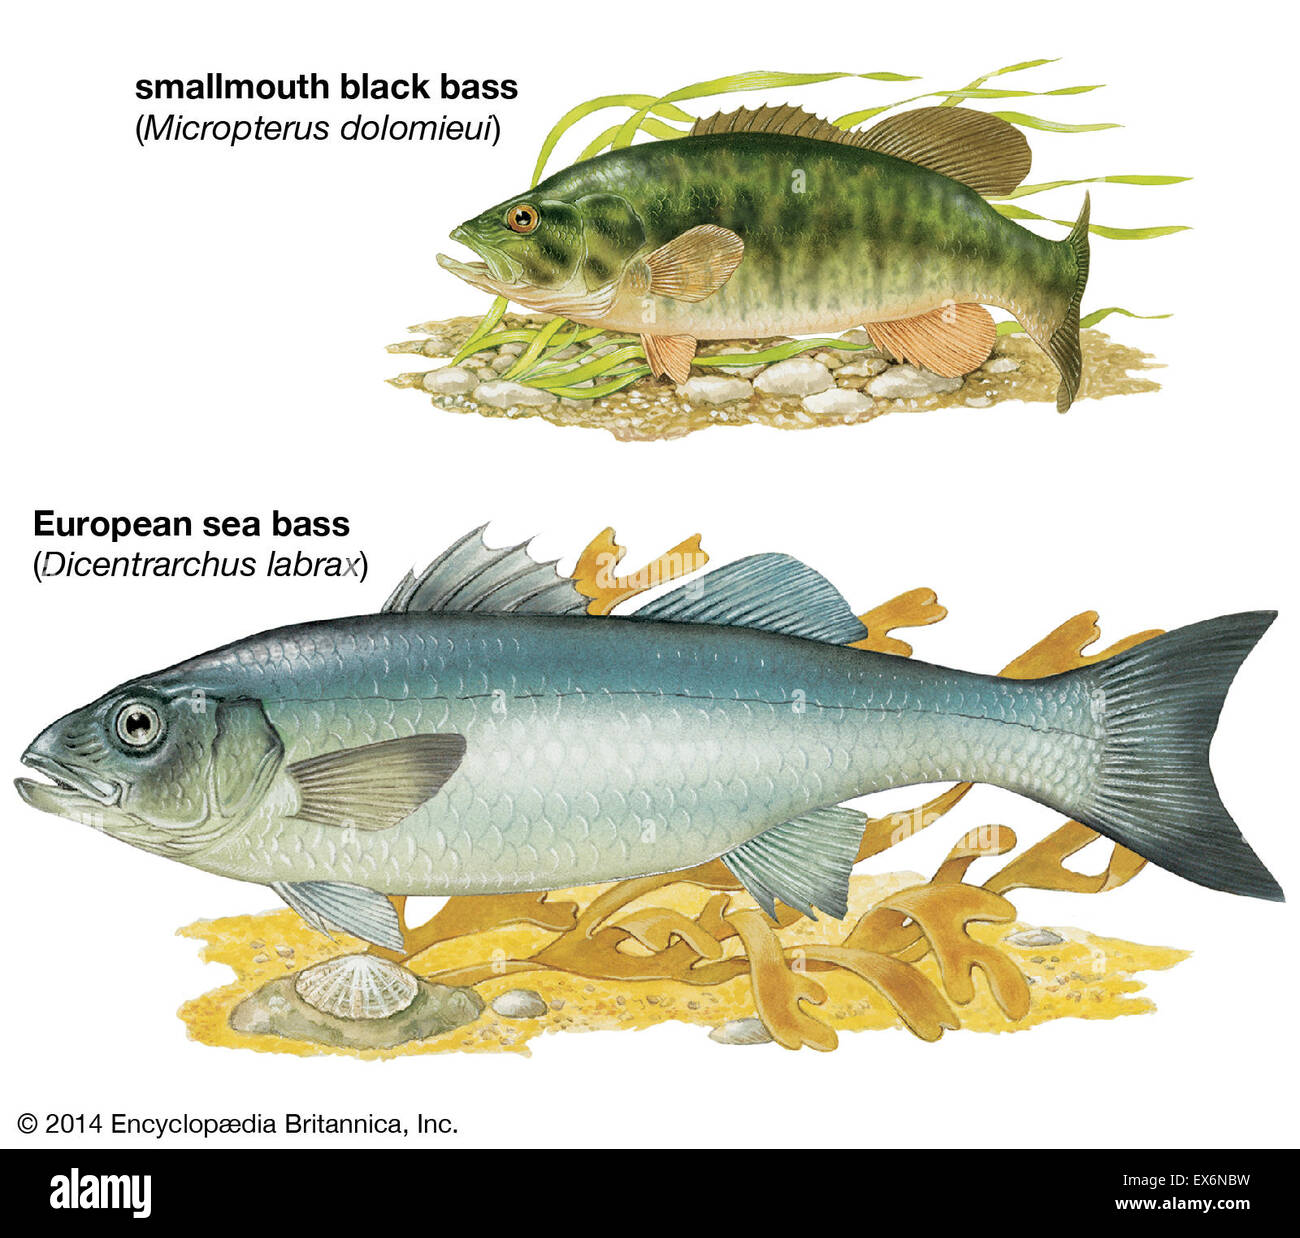 Illustrations Animals Fishes Imágenes De Stock & Illustrations ...